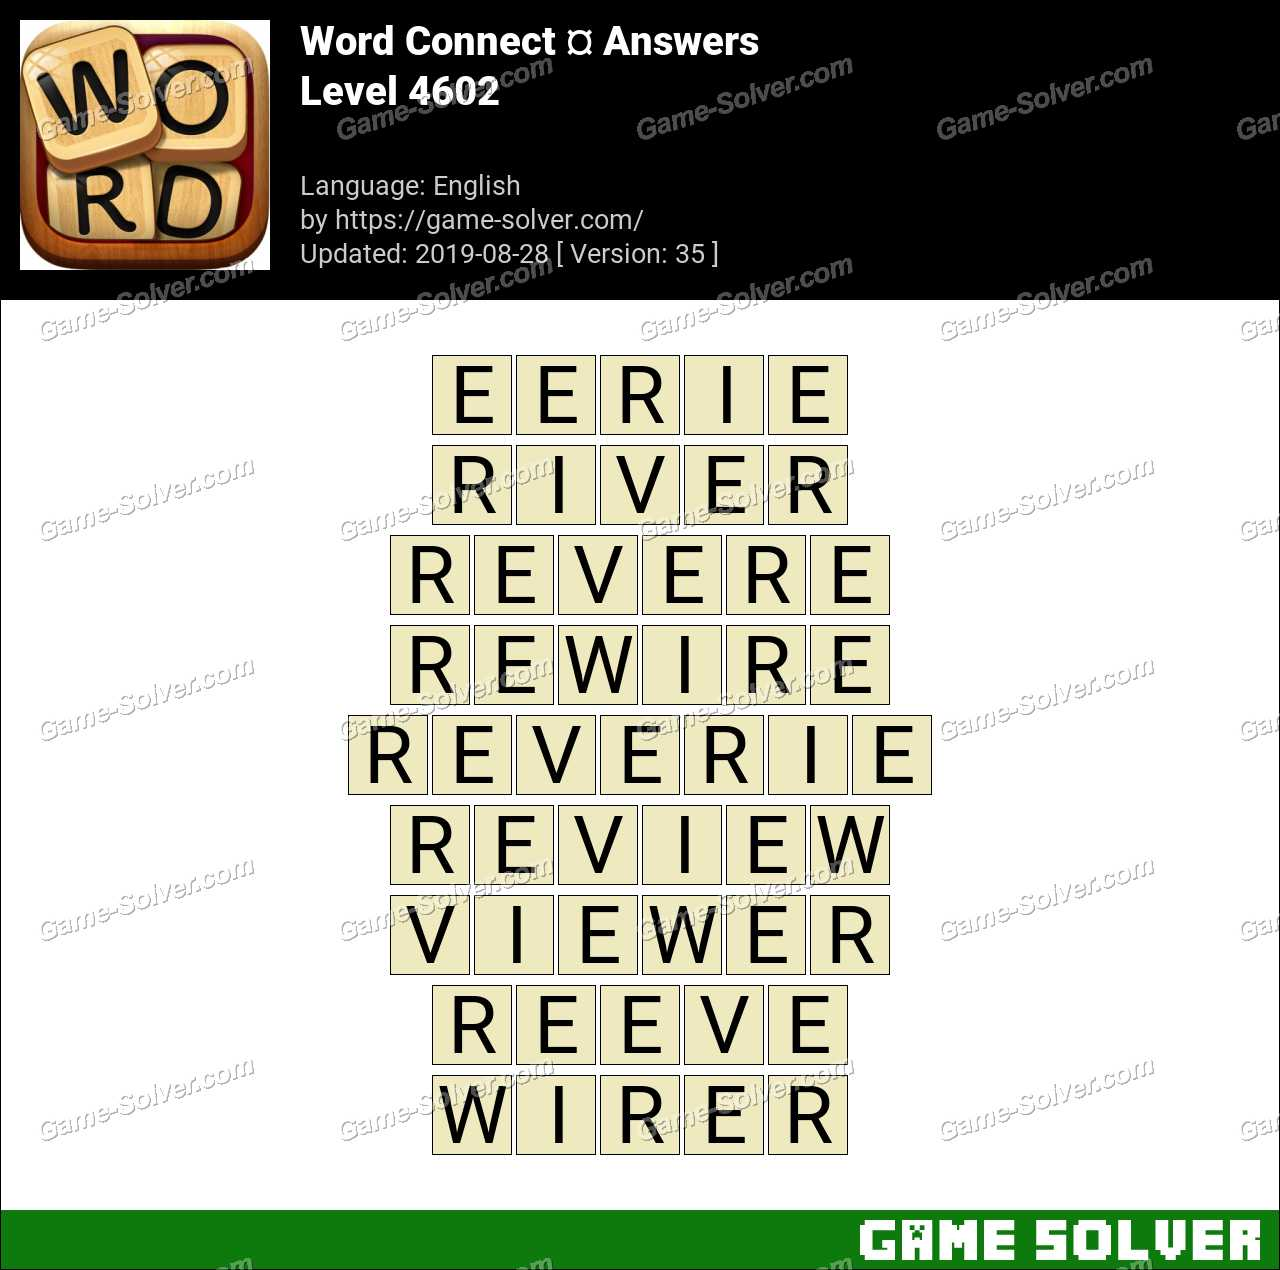 Word Connect Level 4602 Answers